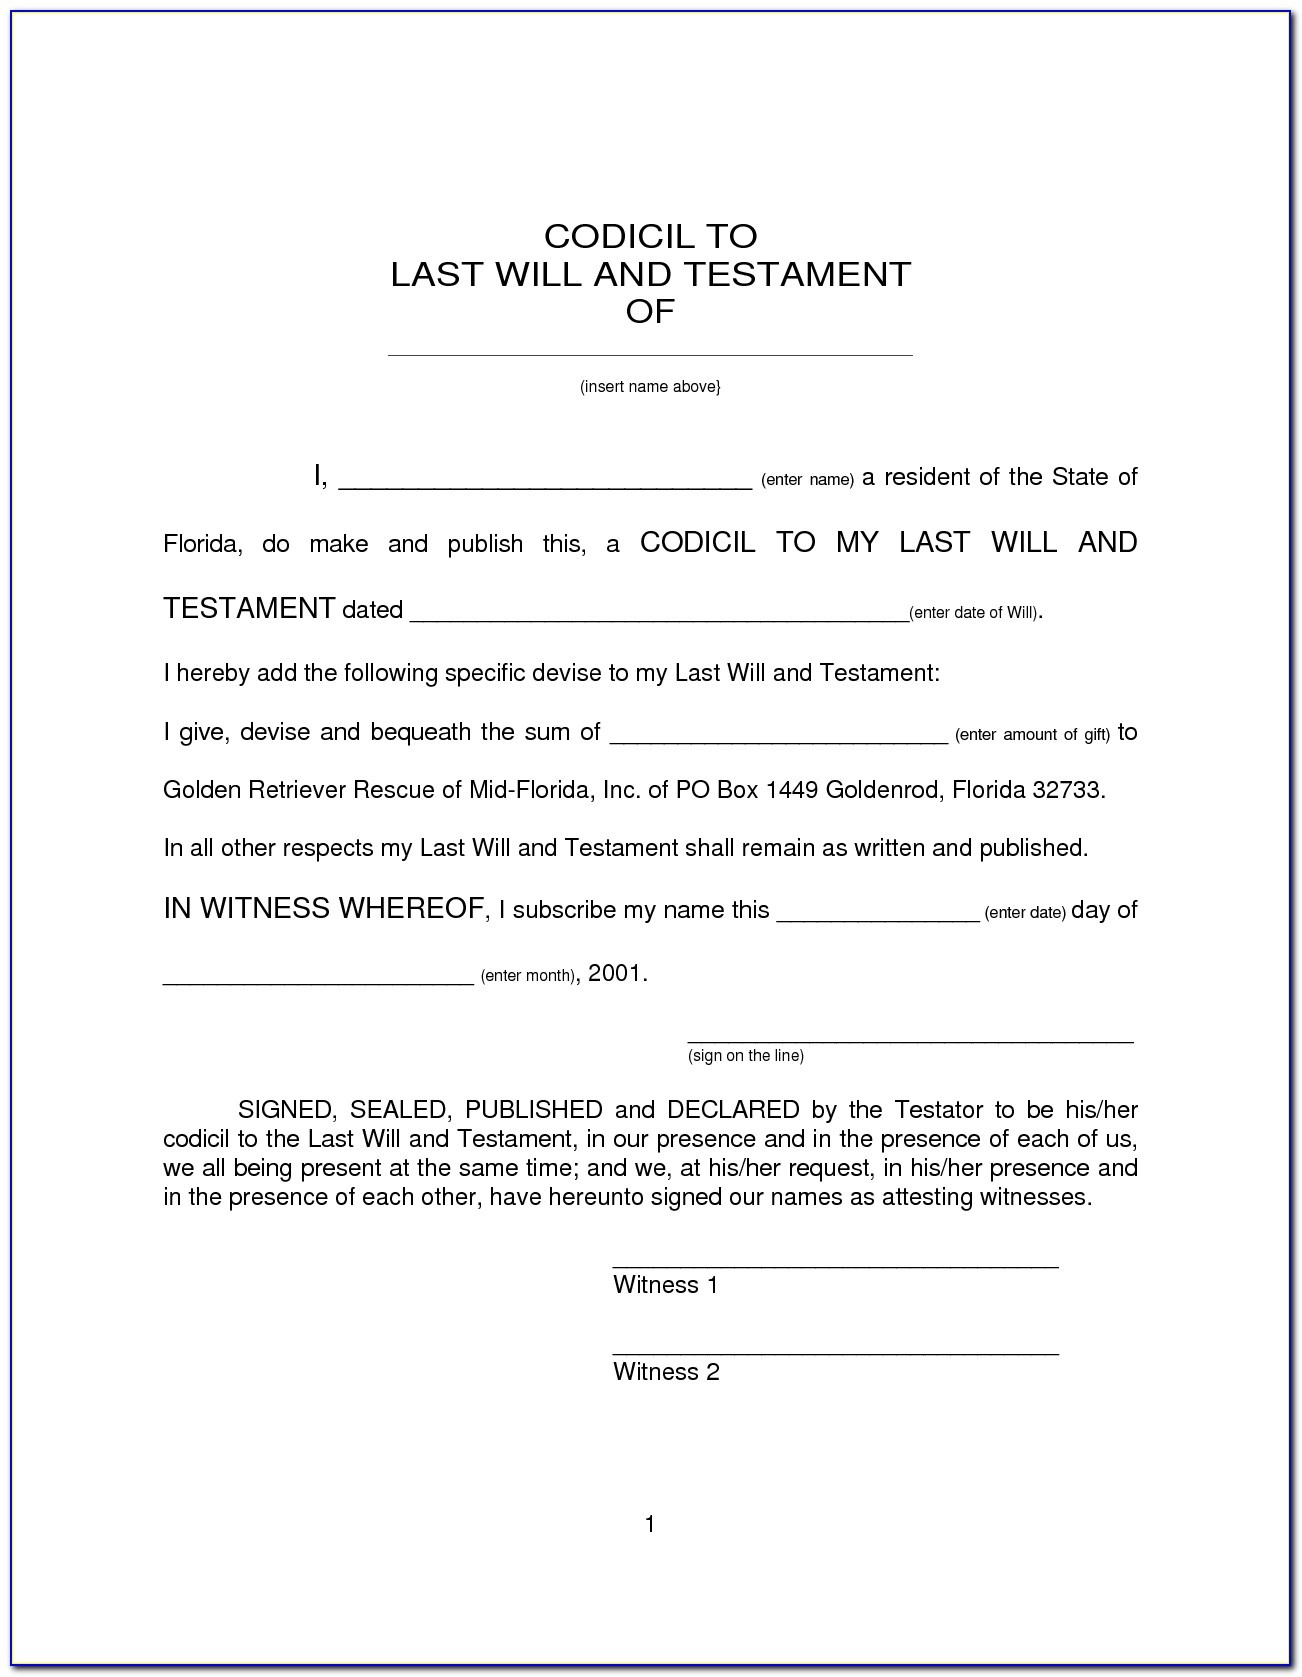 Last Will And Testament Template (6) | Best Agenda Templates Within - Free Printable Last Will And Testament Blank Forms Florida